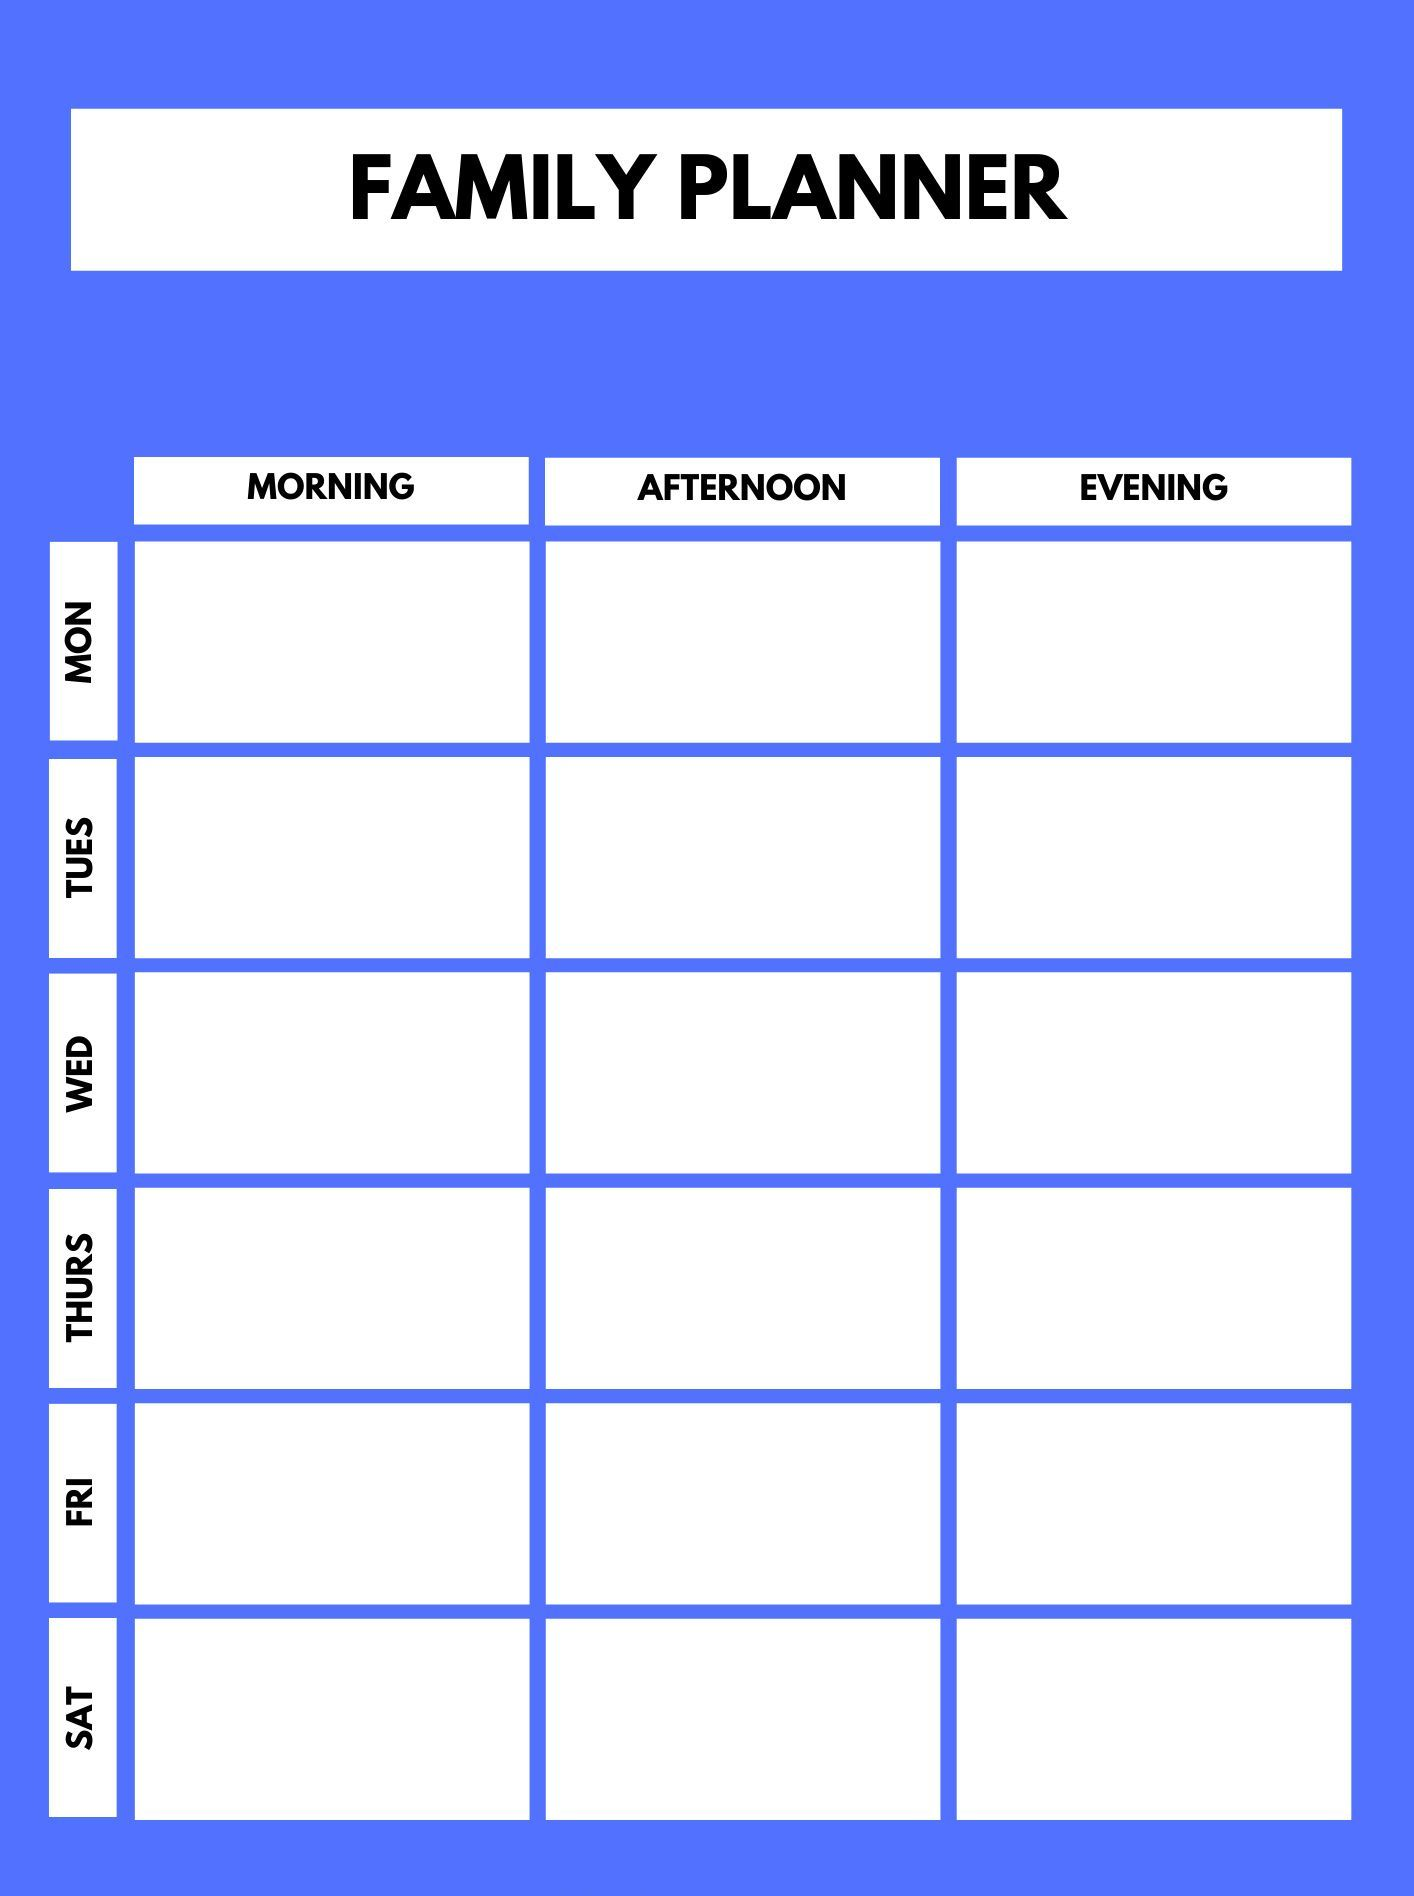 2020 Daily Family Planner Printable